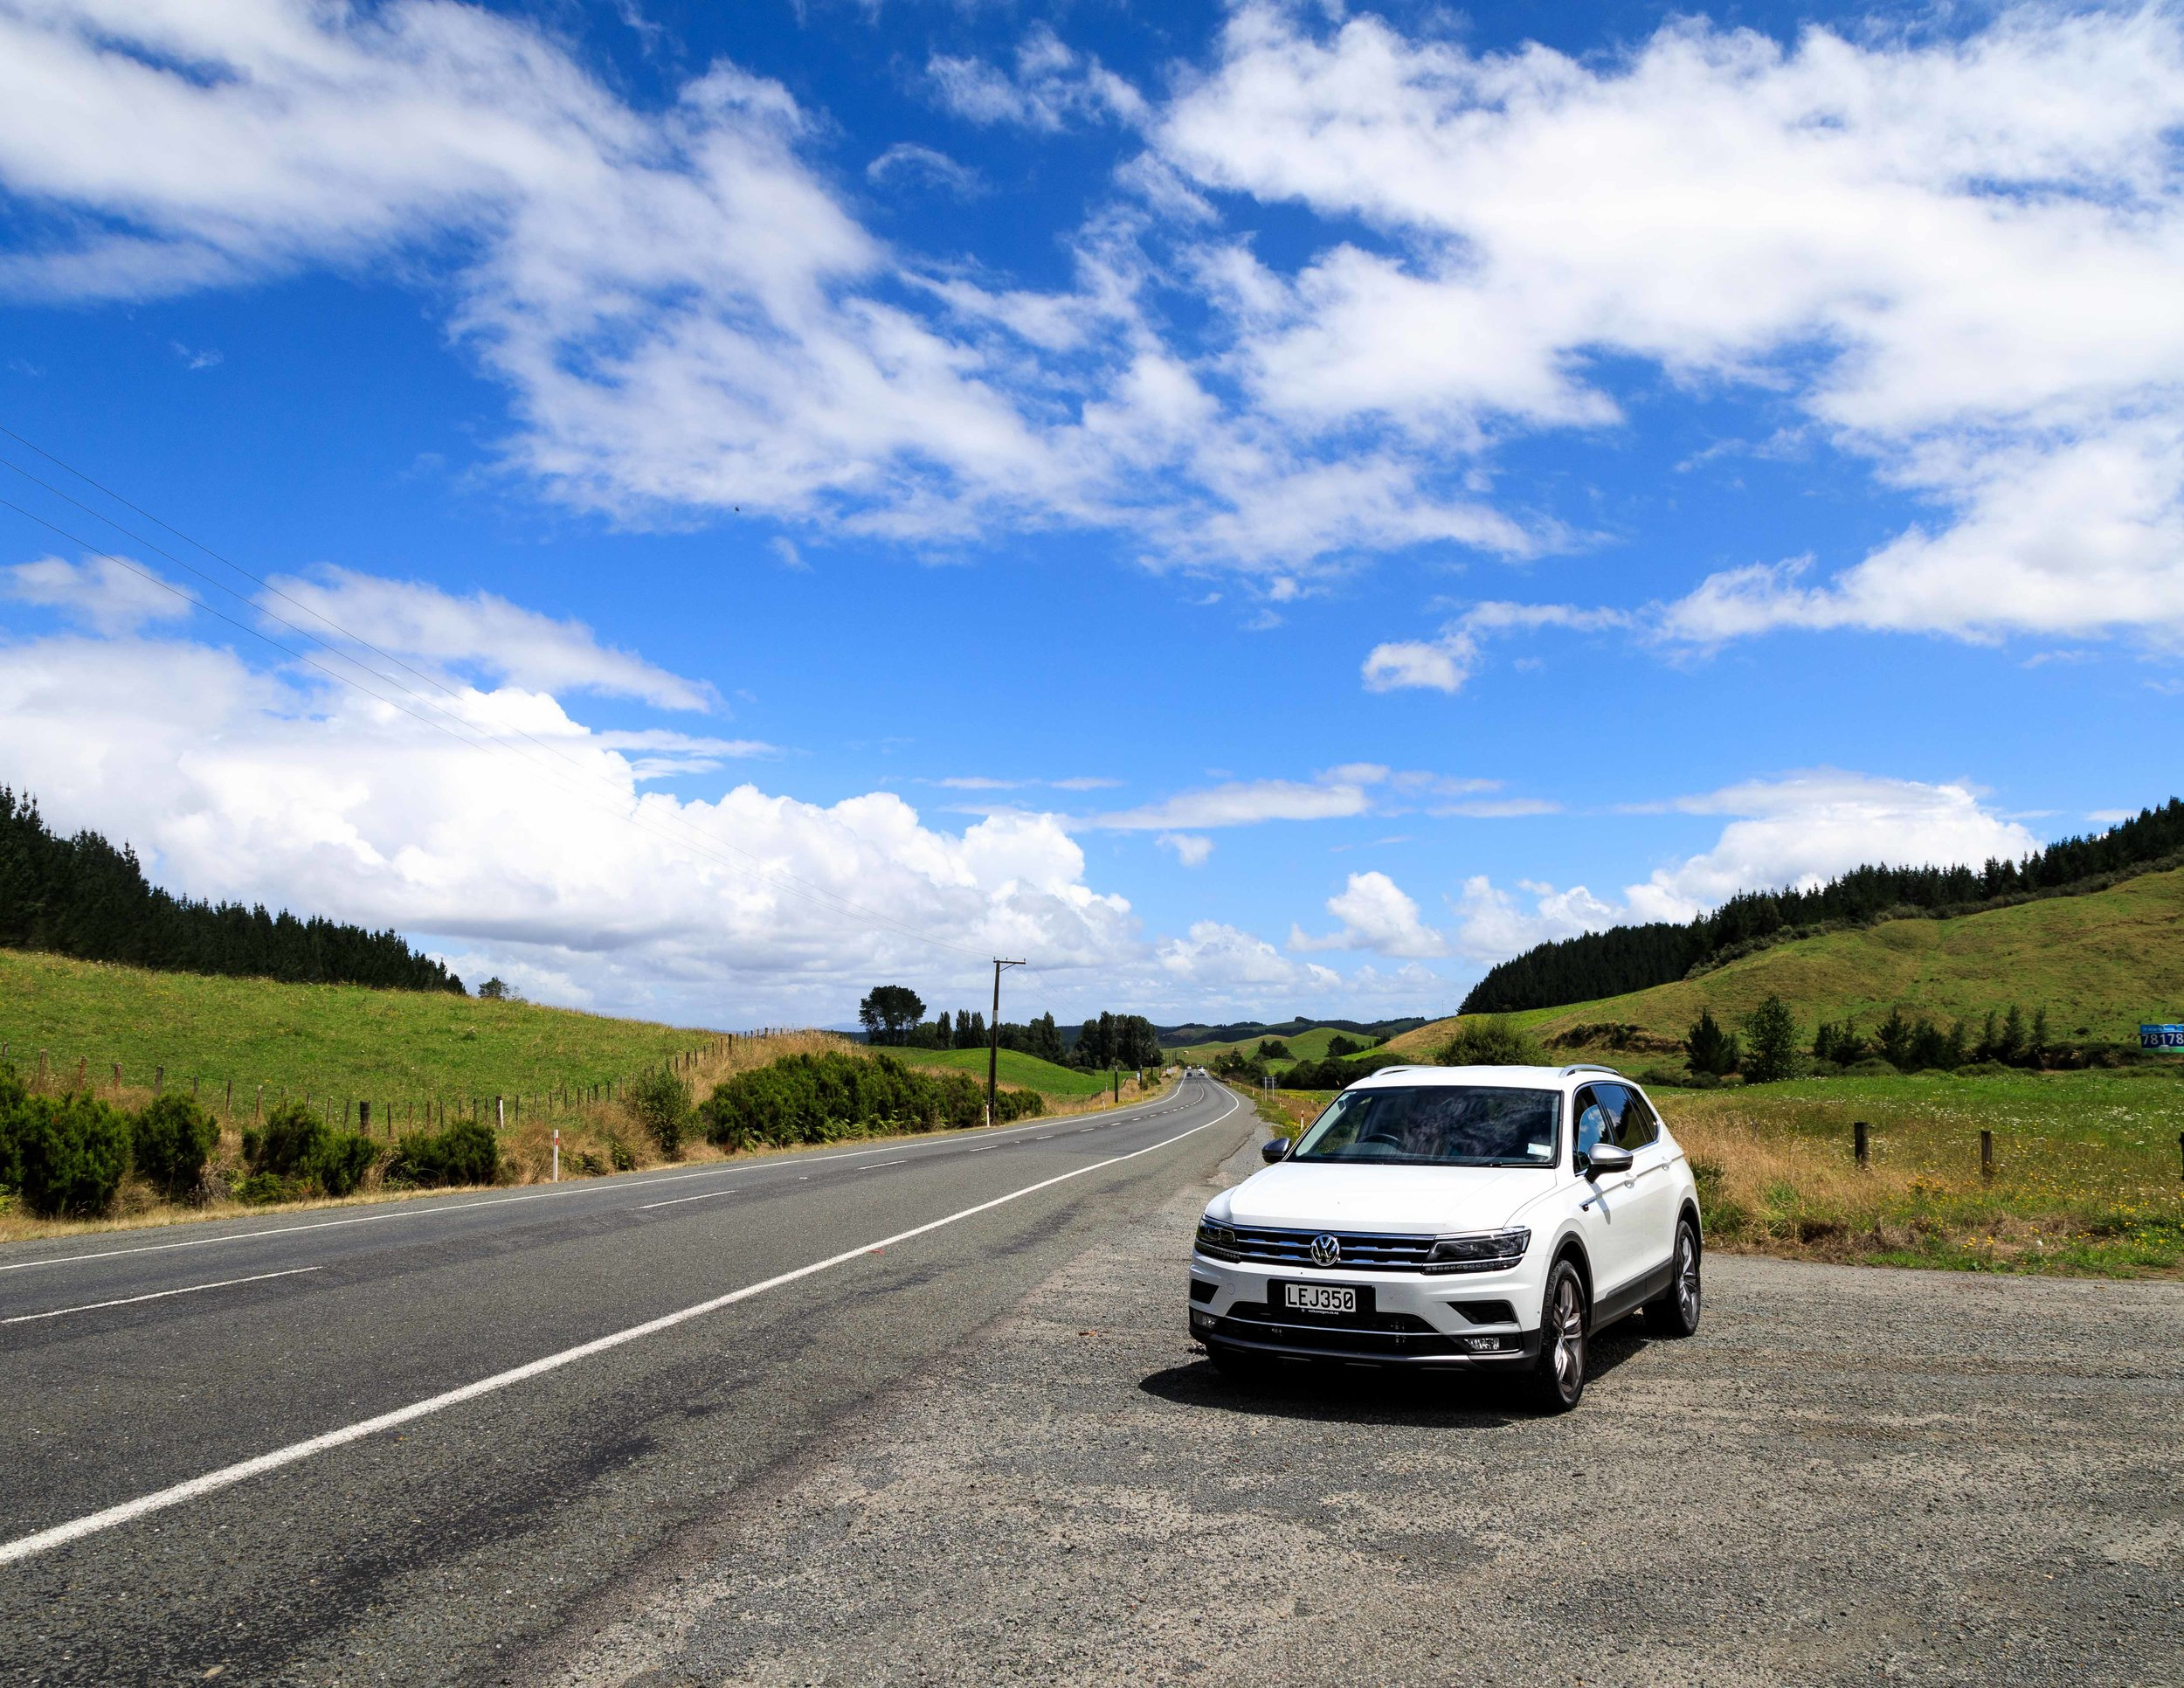 One of the many green and picturesque roads on the North Island of New Zealand